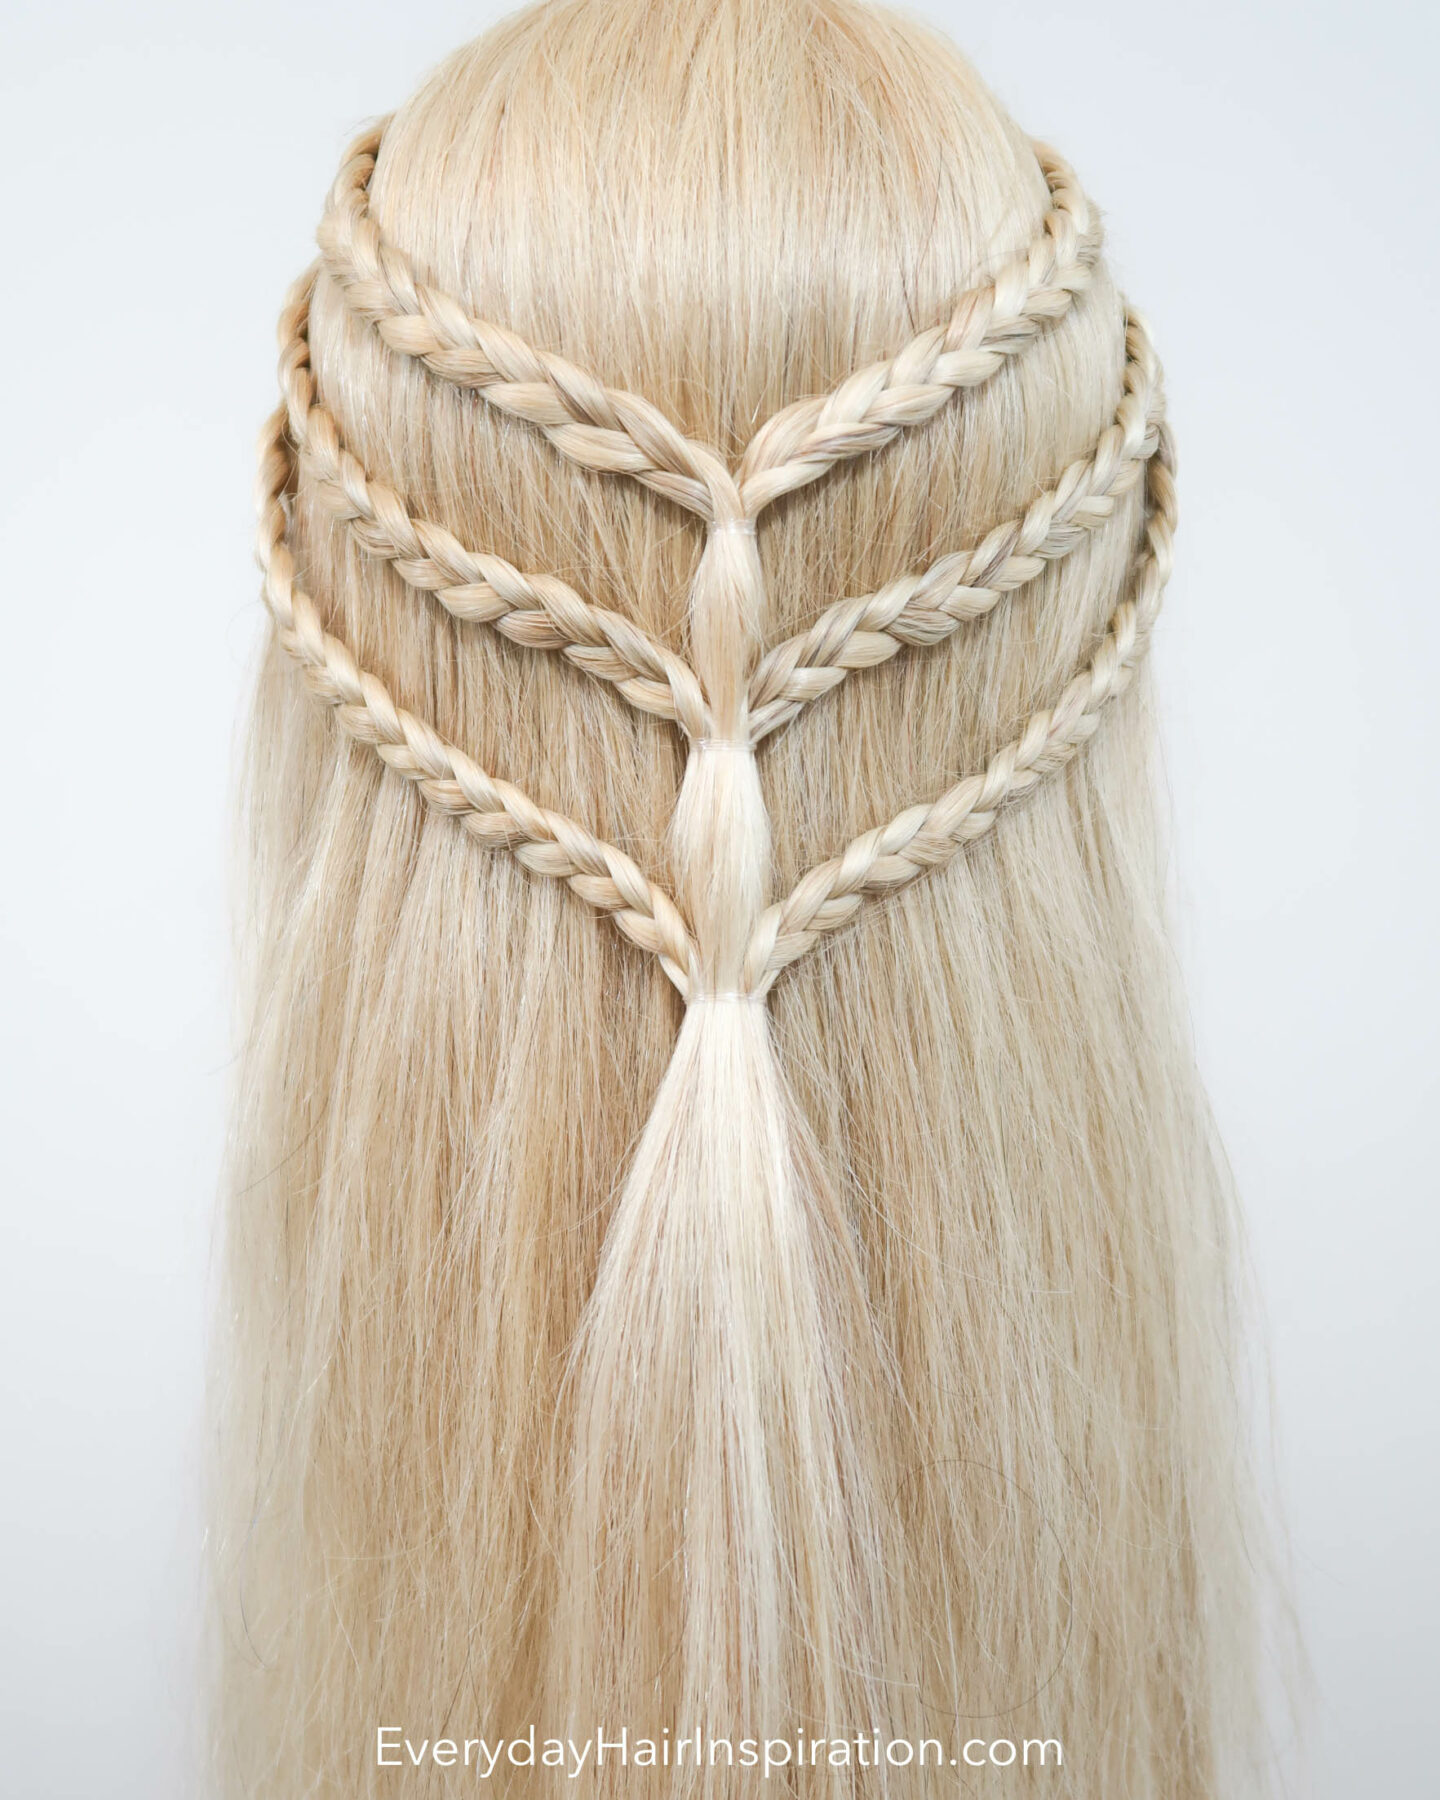 Blonde hairdresser doll with a triple braided half up half down hairstyle seen from the back